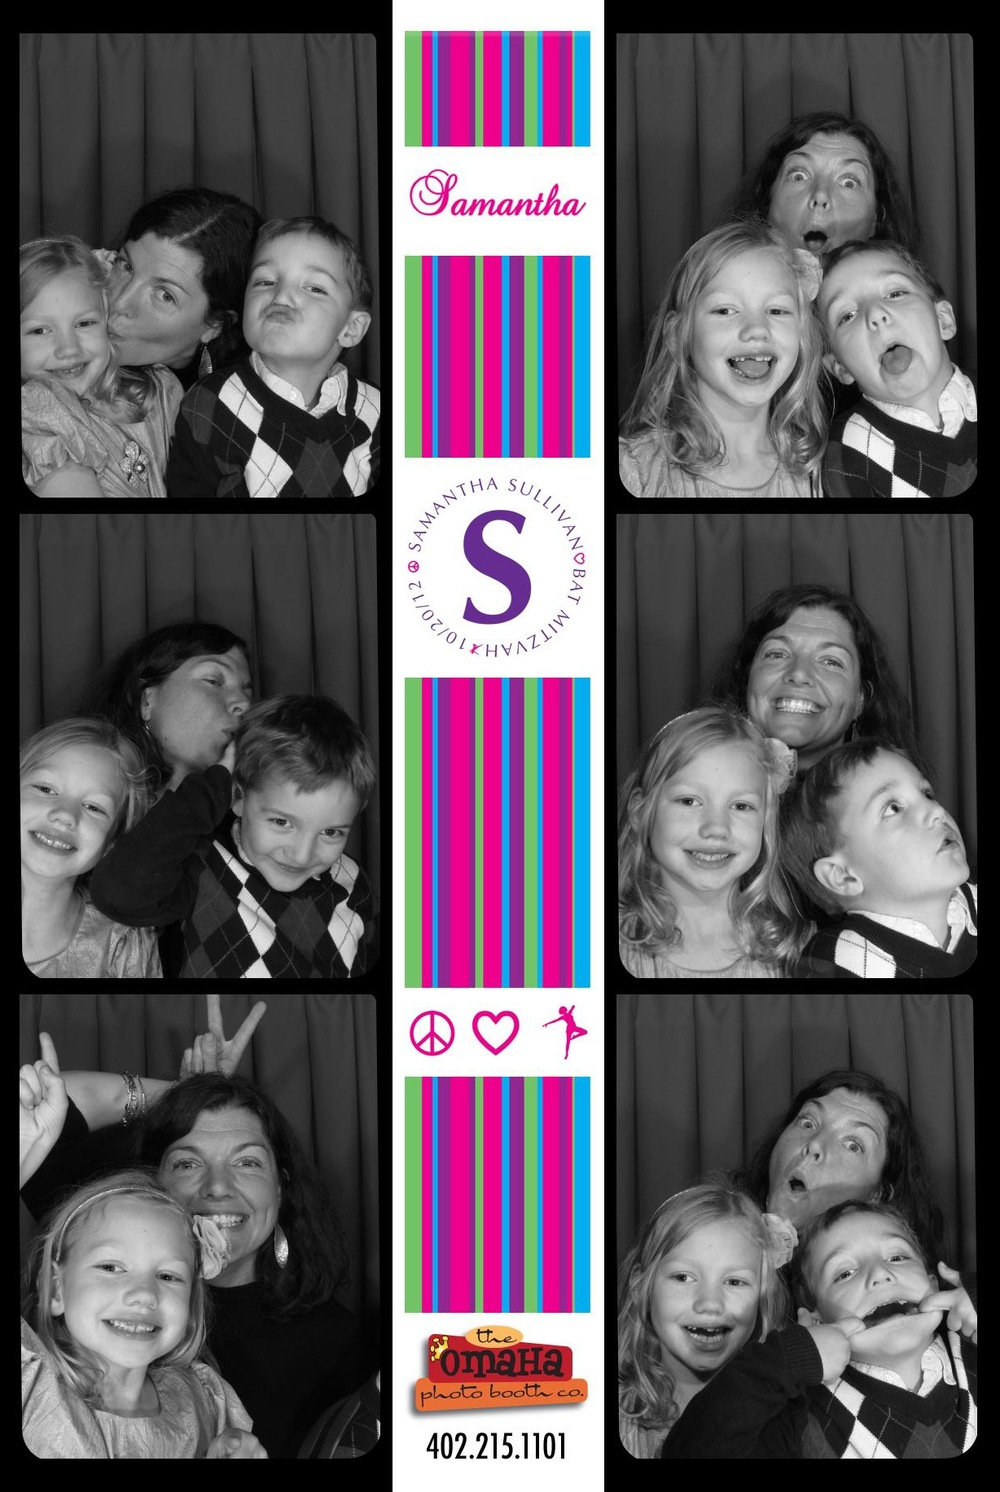 Omaha Photo Booth Bar and Bat Mitzvah Rental